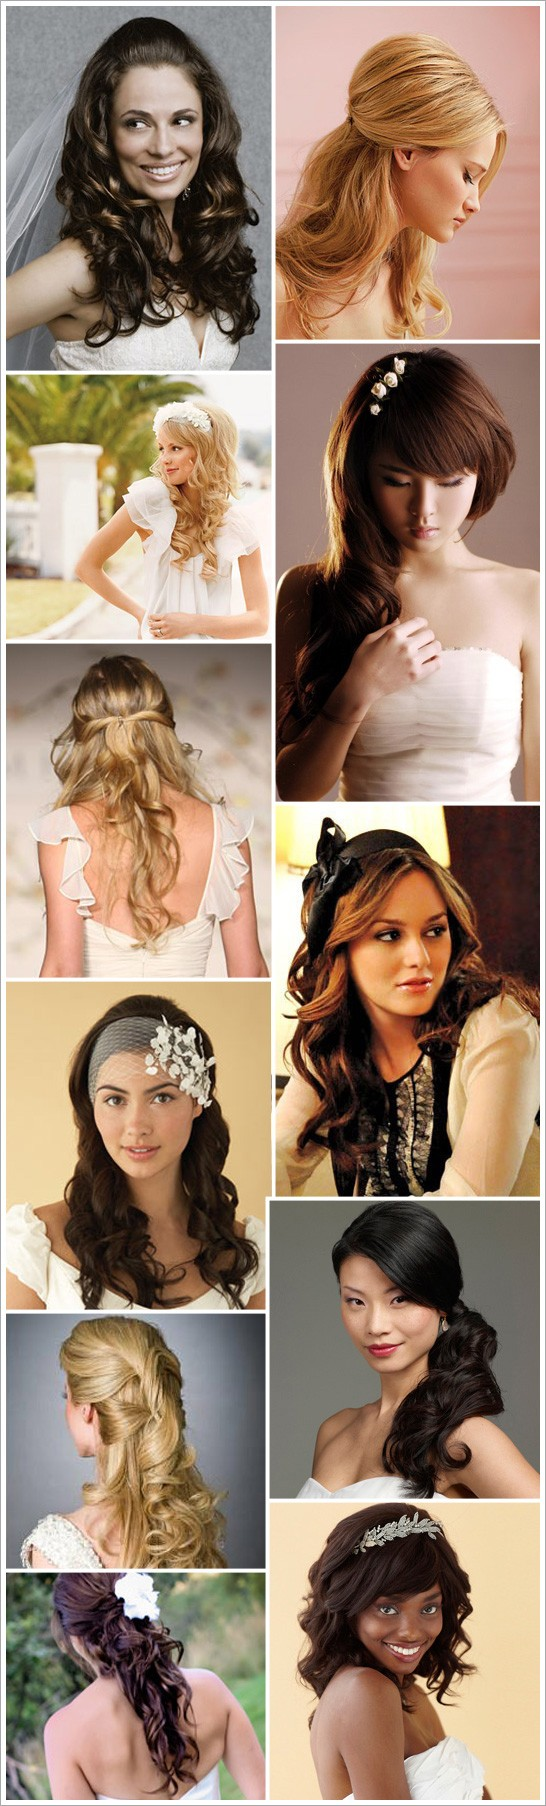 Soft, Swooping, & Feminine Styles for Long Hair. Now if only I had a clue ho